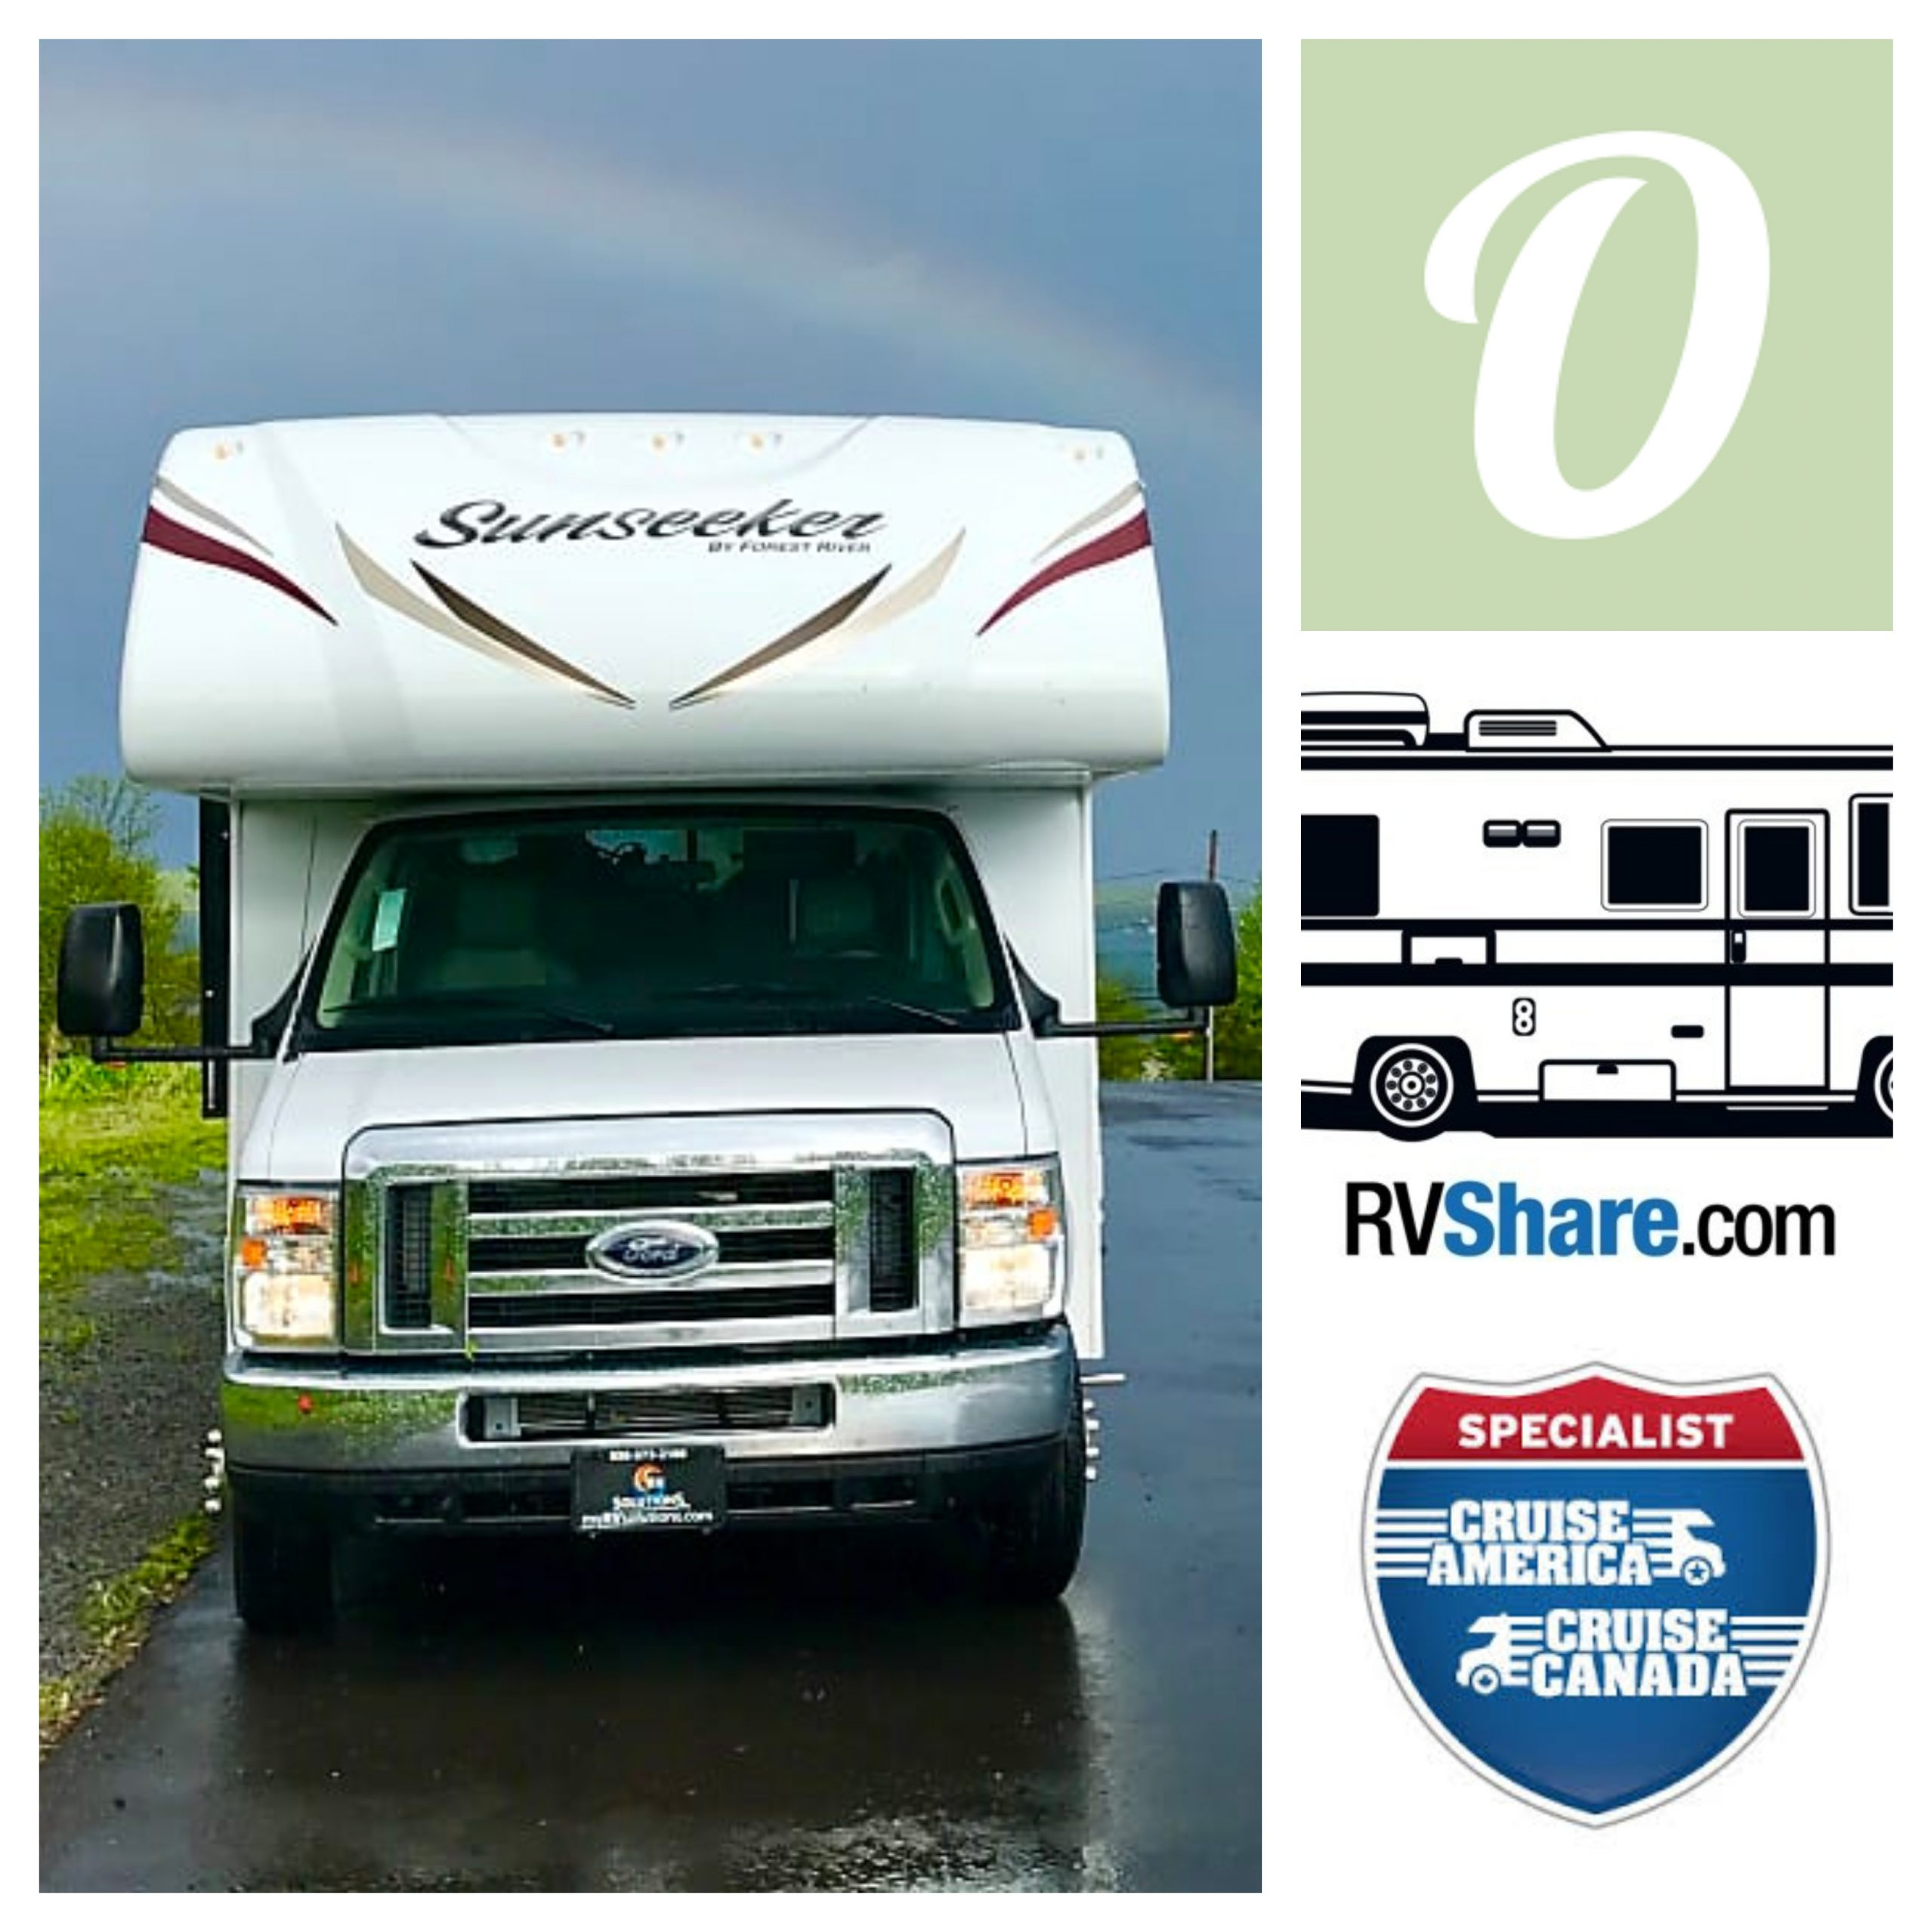 Top 3 RV Rentals The Adventure Travelers scaled